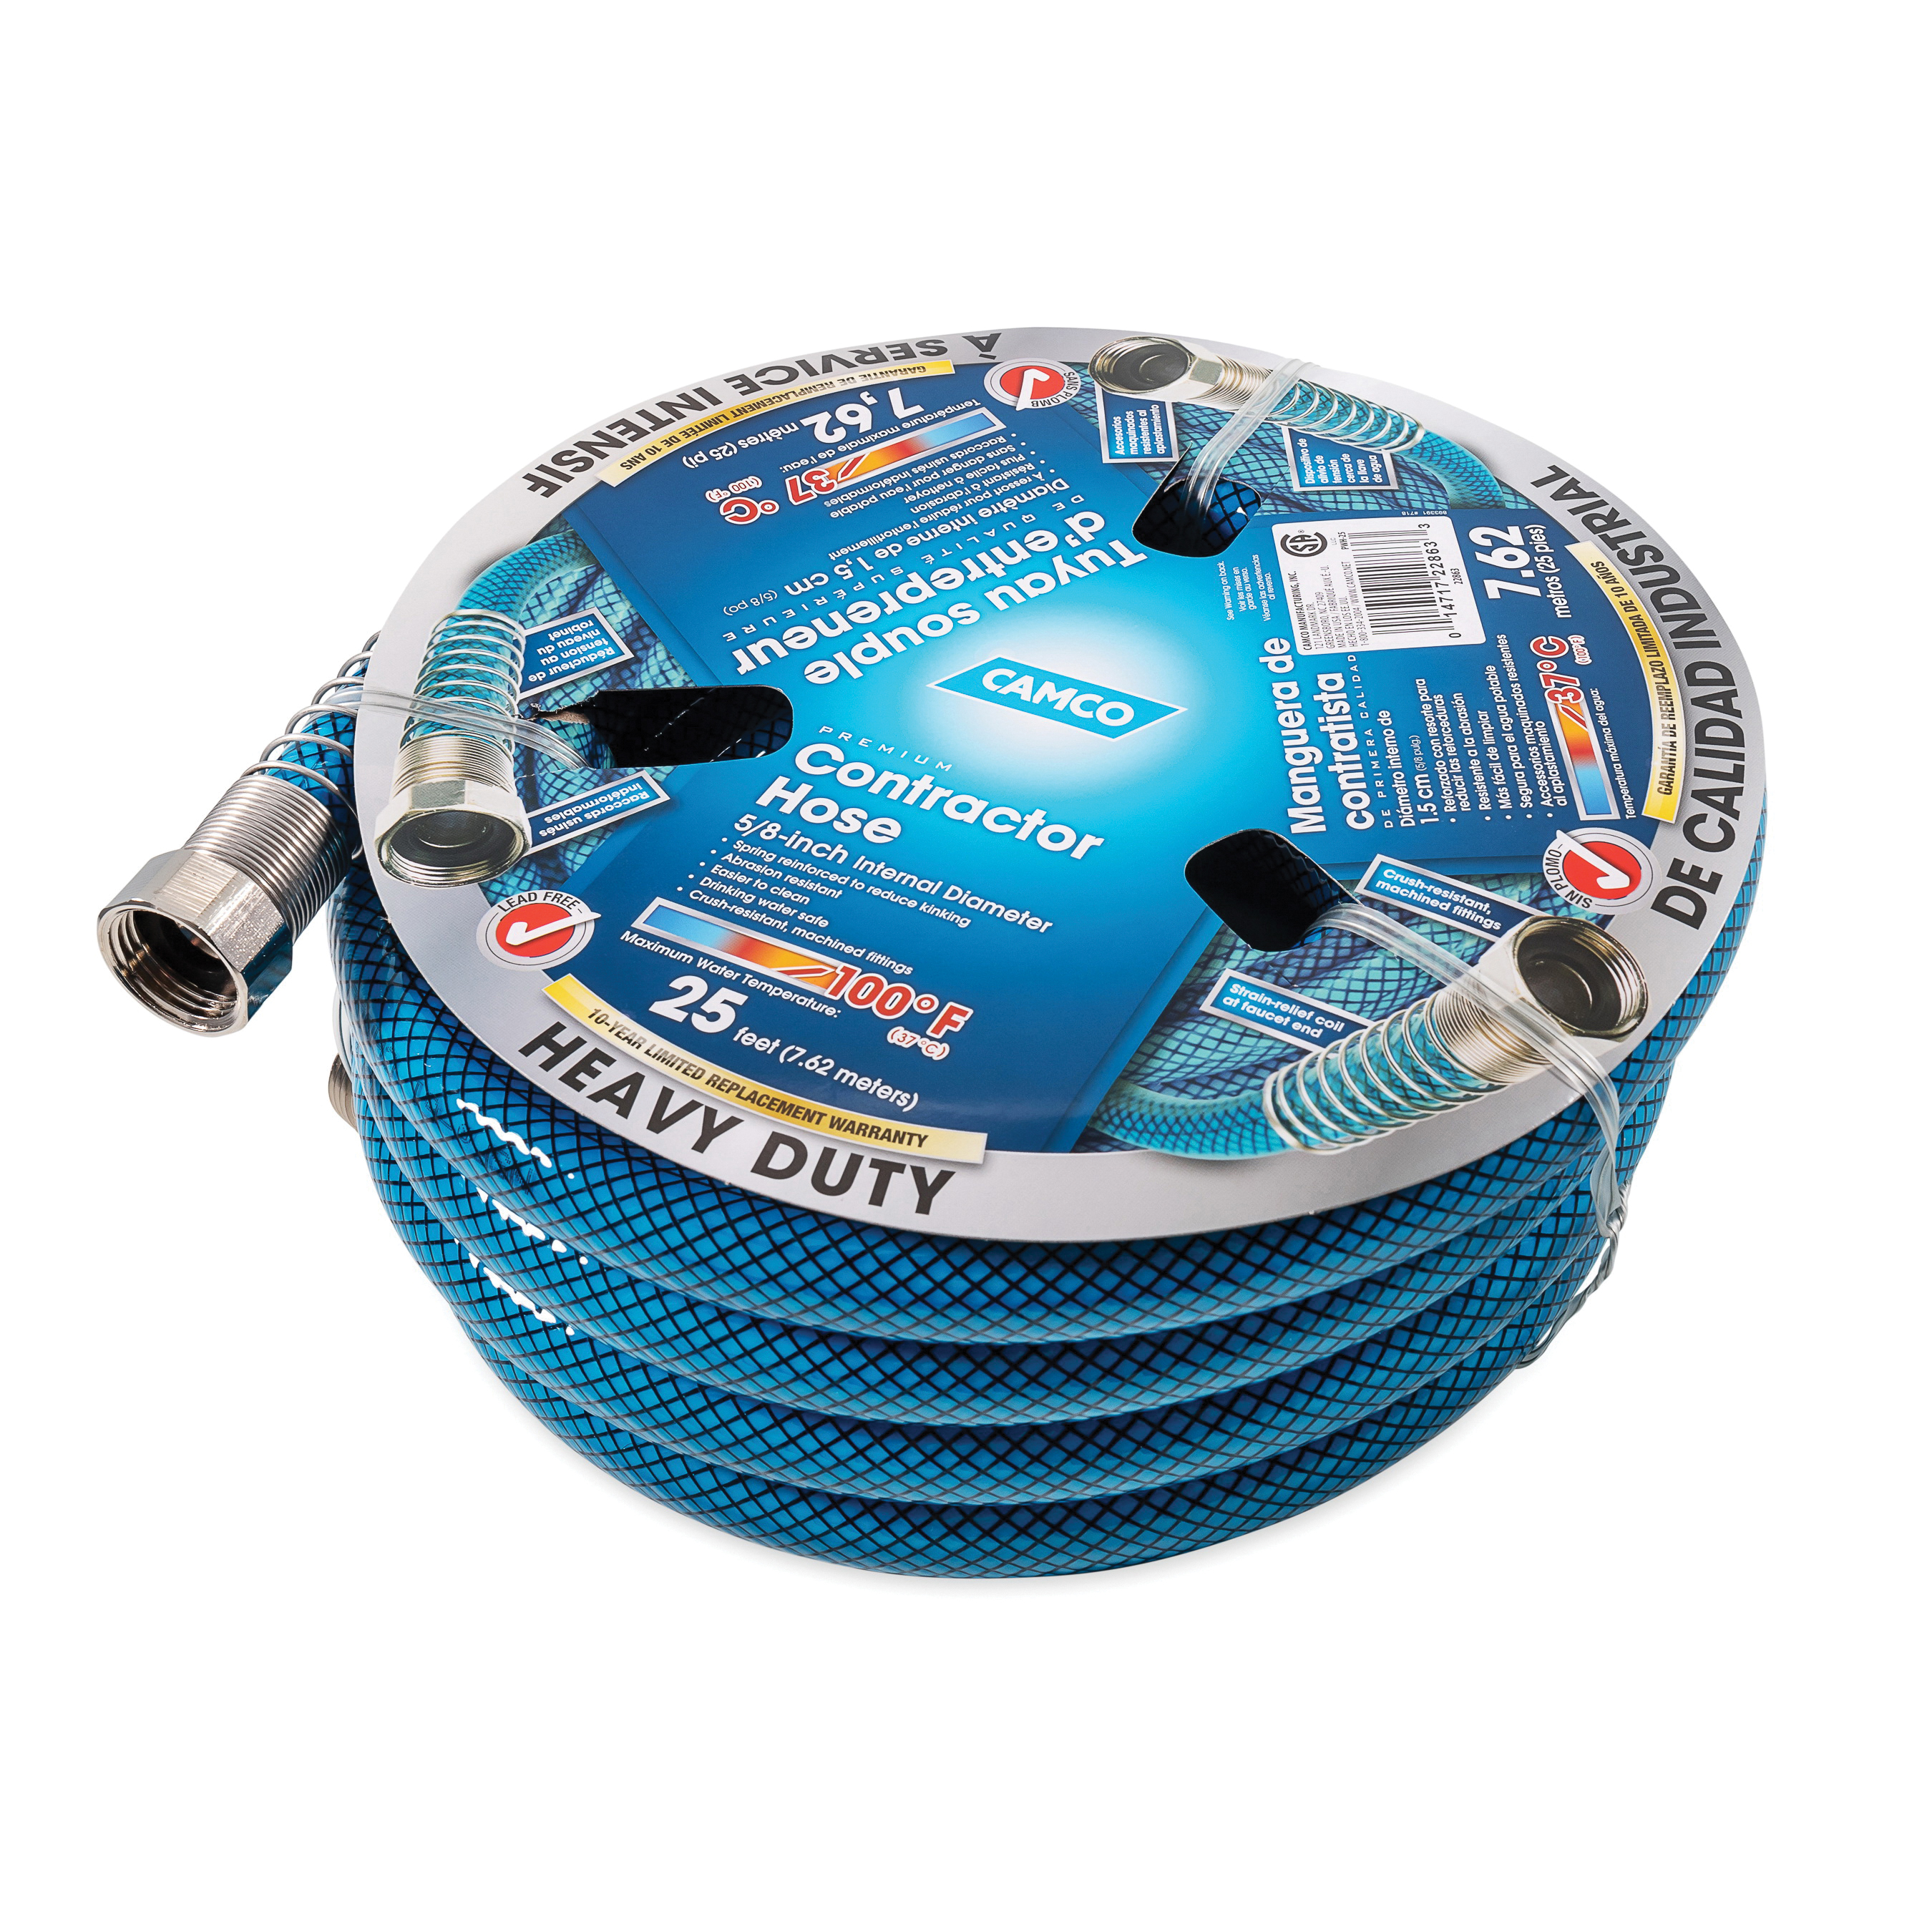 Camco 22863 Heavy Duty Contractor Hose, 5/8 in Nominal, 25 ft L, 300 psi Working, PVC, Domestic